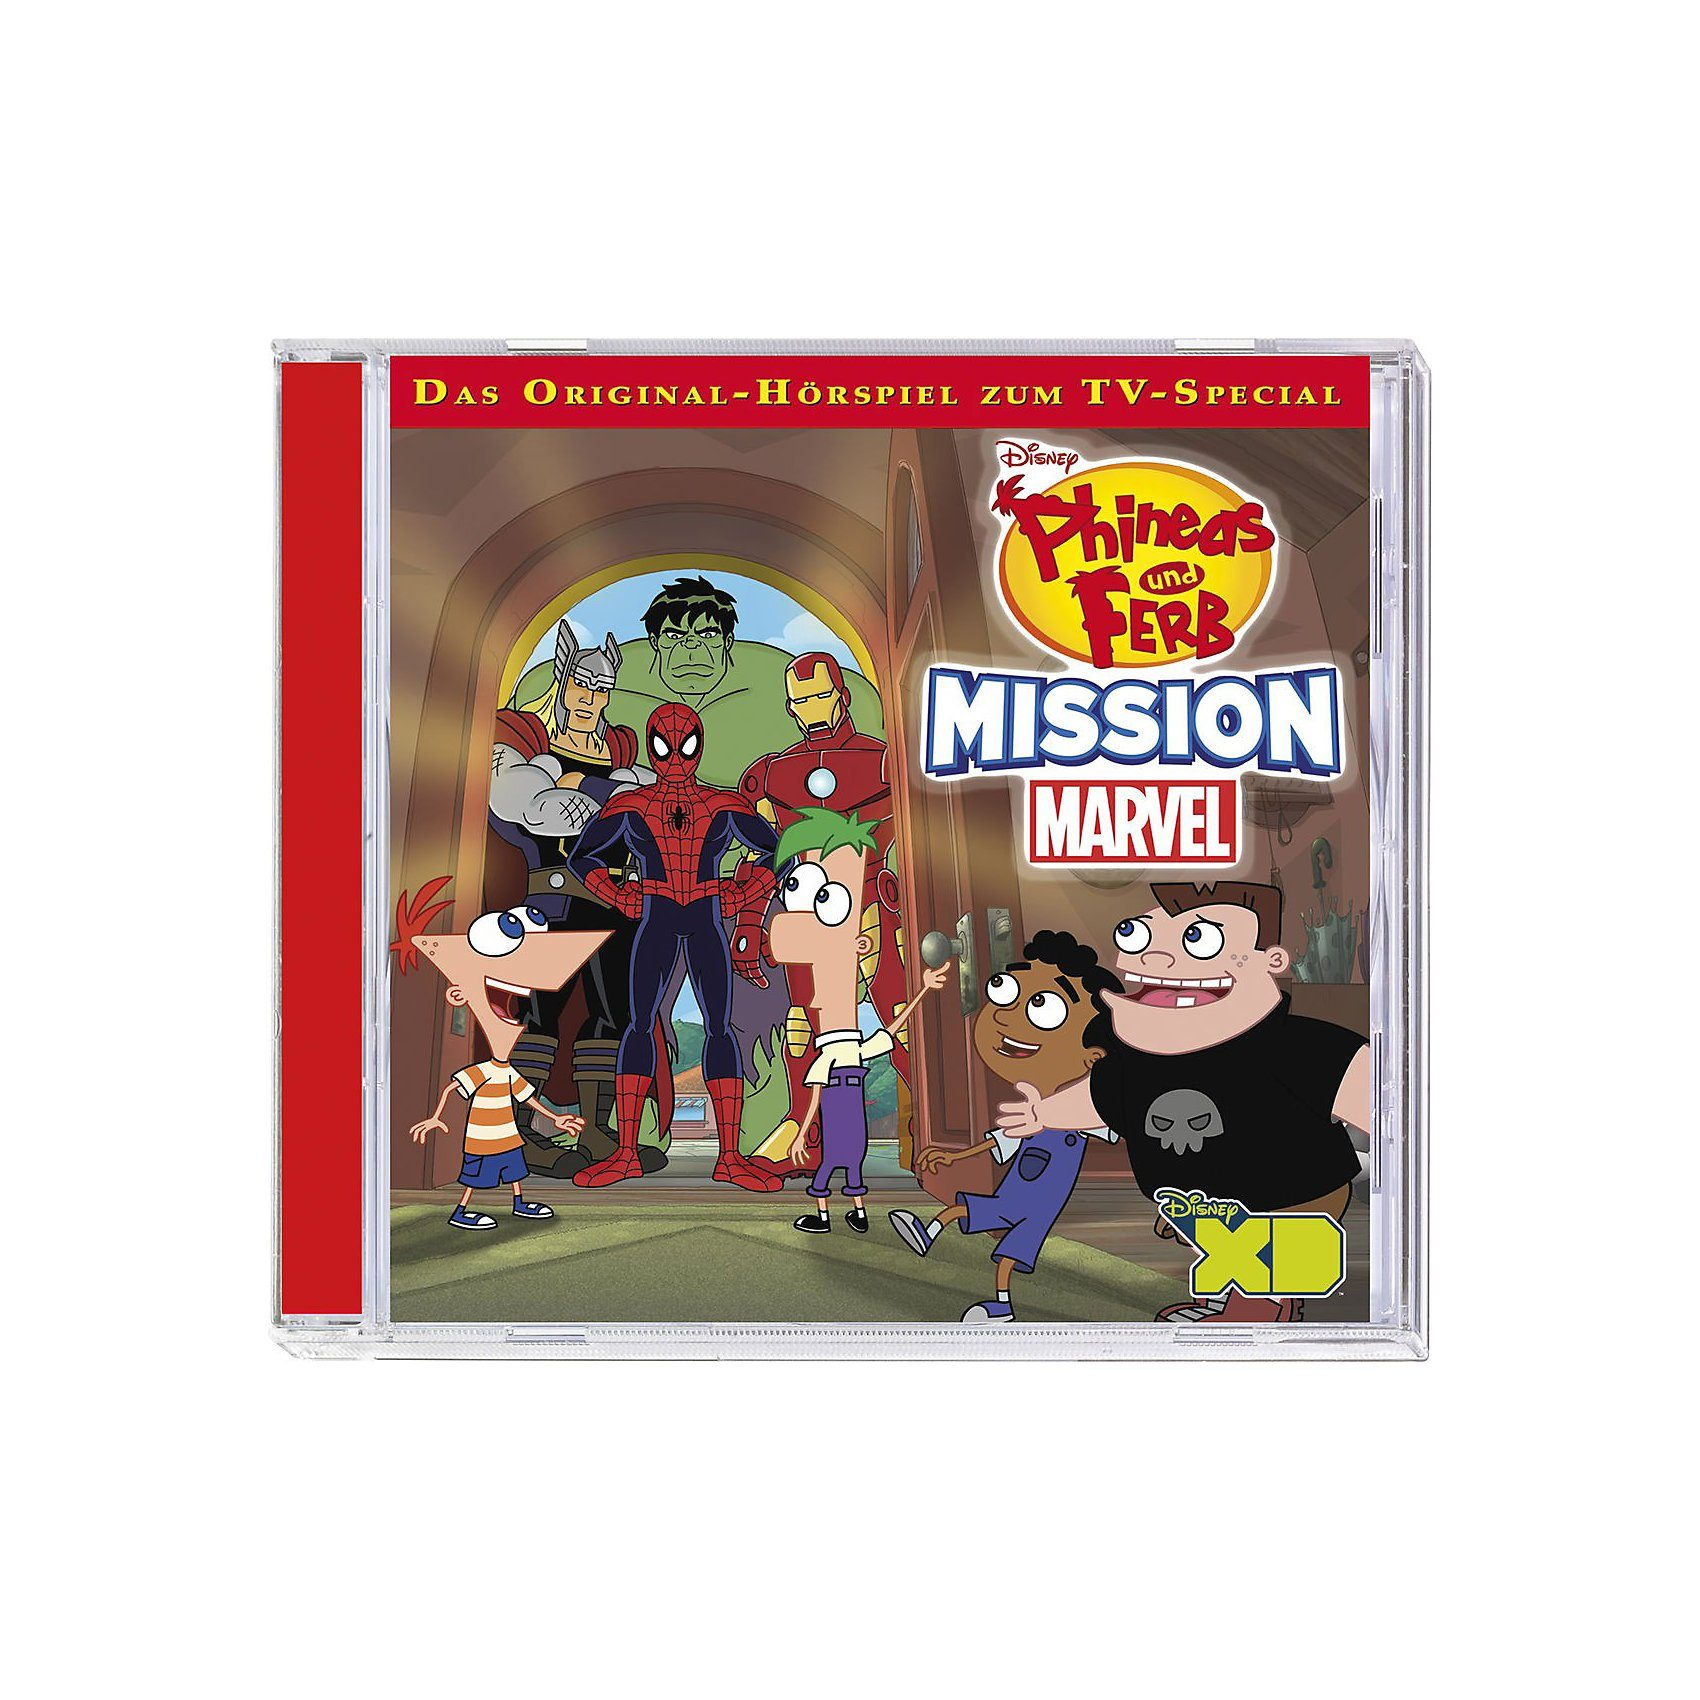 Kiddinx CD Phineas & Ferb 09 - Mission Marvel